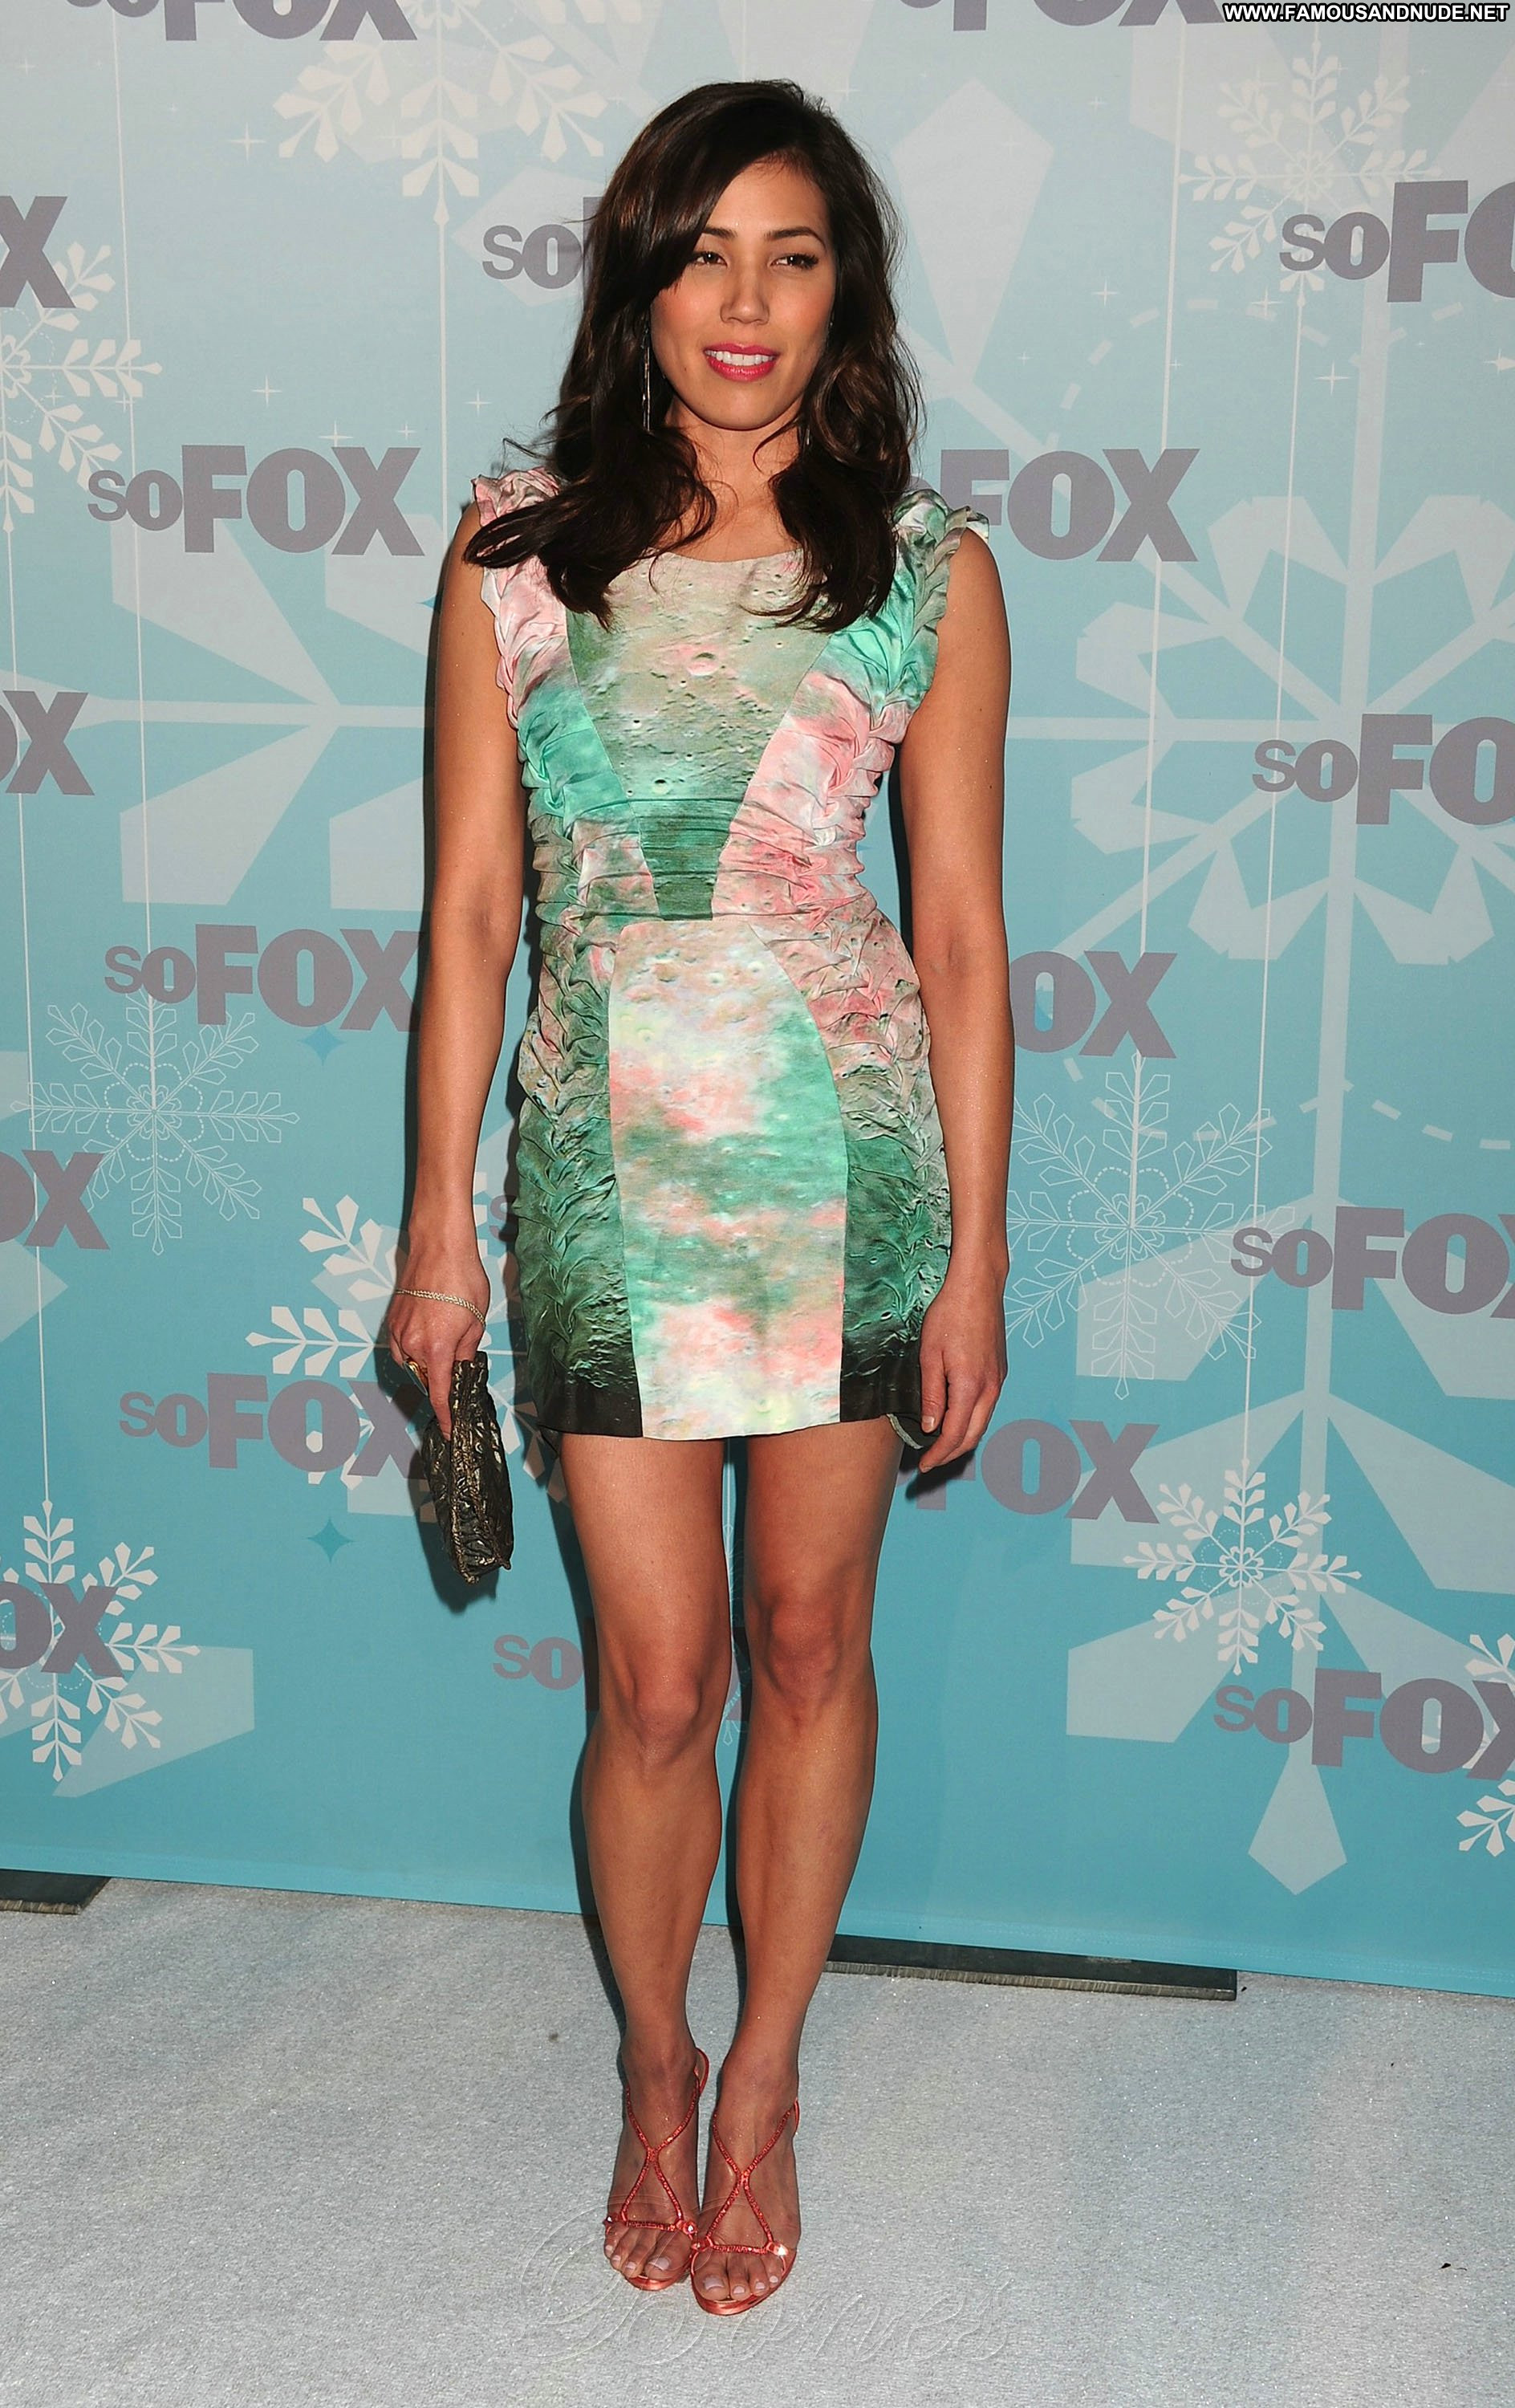 Michaela Conlin No Strings Attached No Strings Attached Celebrity Beautiful Babe Posing Hot ...